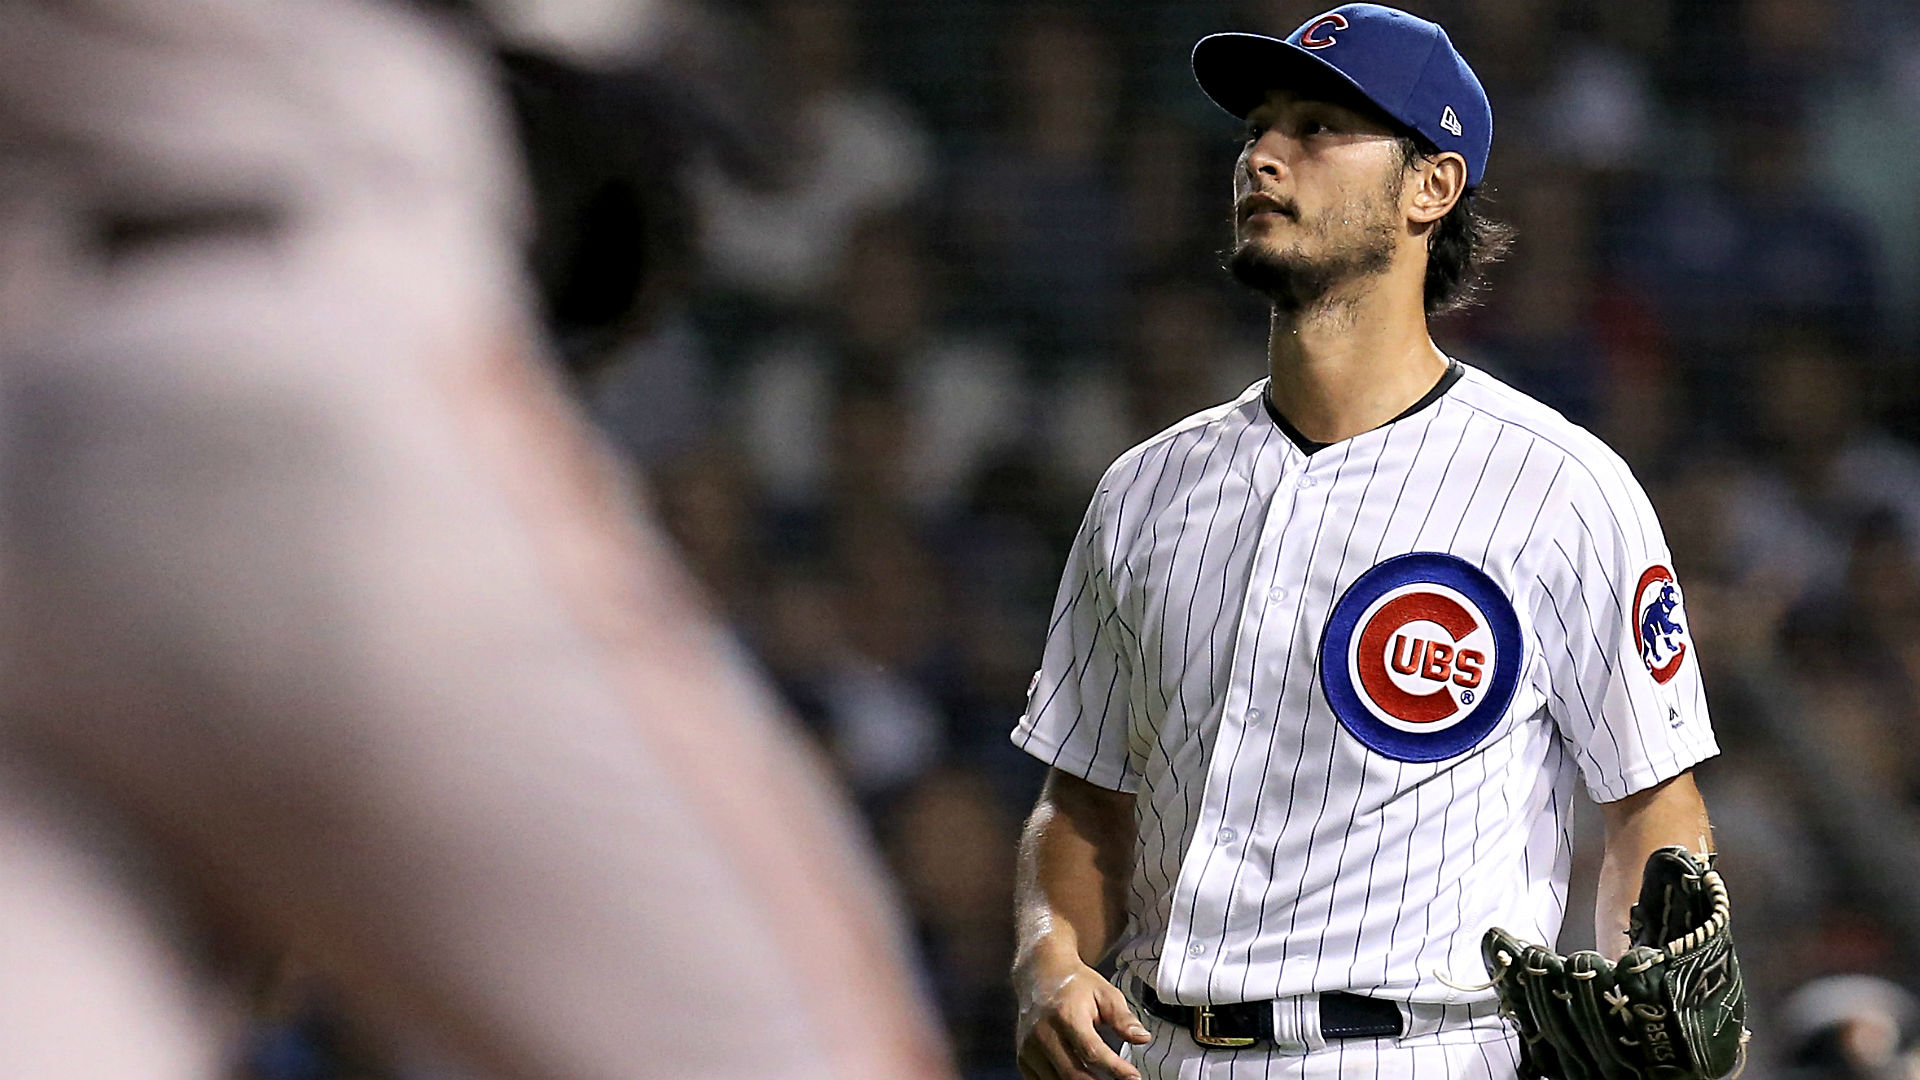 Yu Darvish gives Astros pass on sign-stealing, then gets roasted by Christian Yelich over video